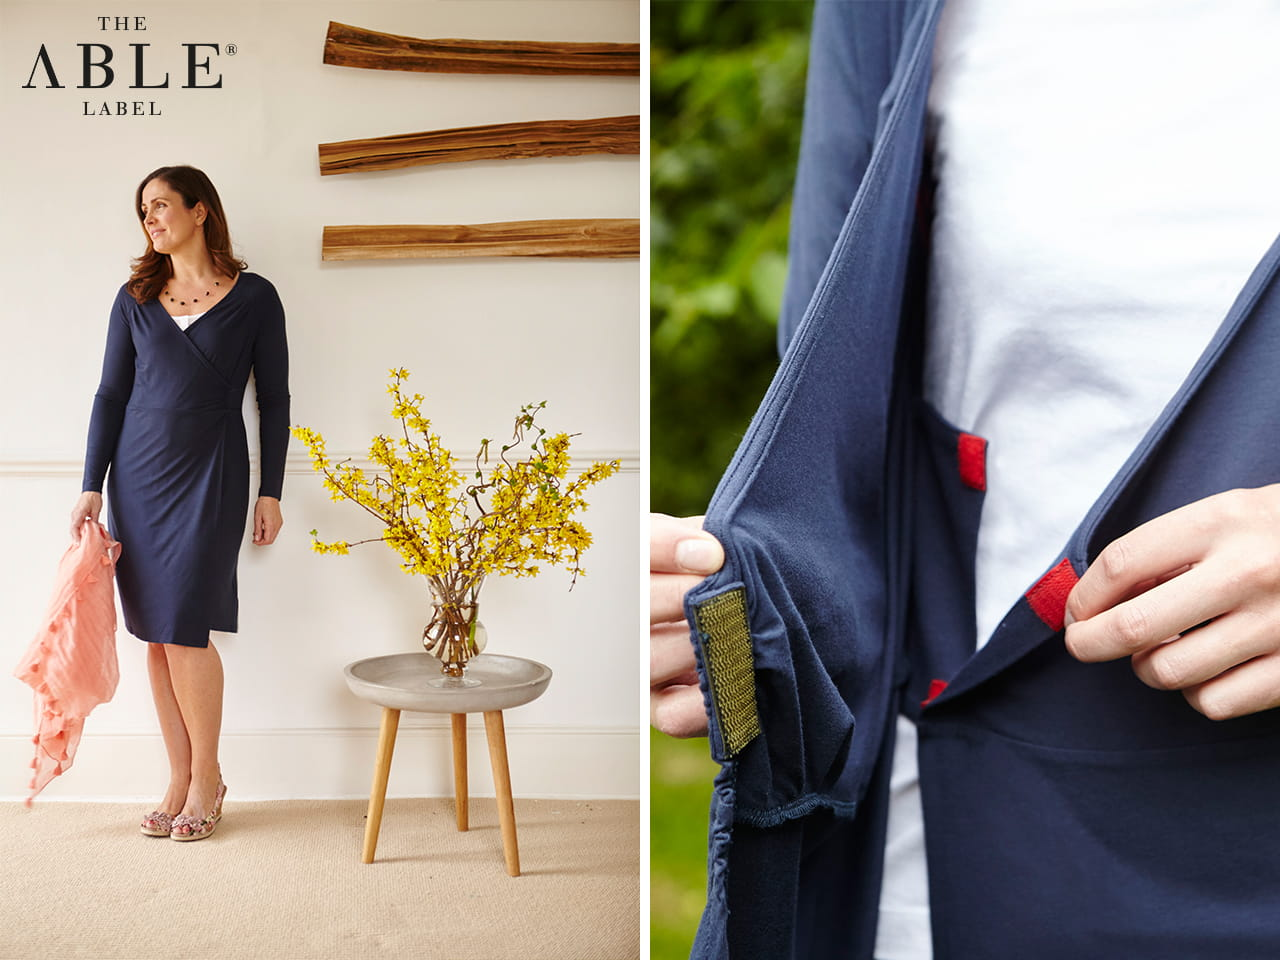 Able Label - quality, stylish clothes with adapted designs and hidden extras